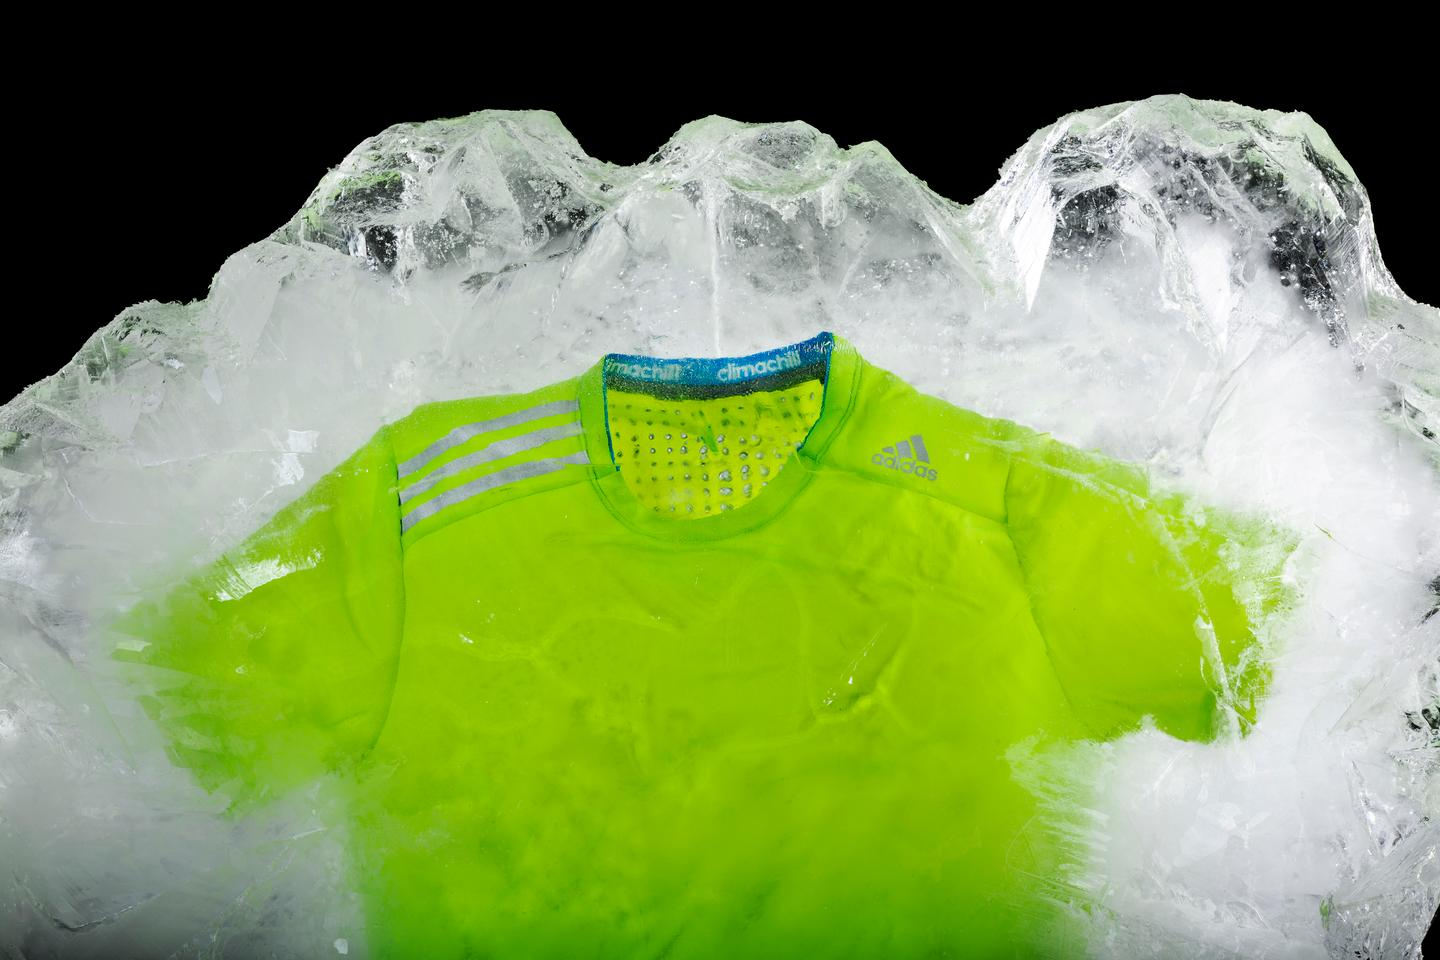 Adidas' new Climachill fabric gives athletes a cool-down